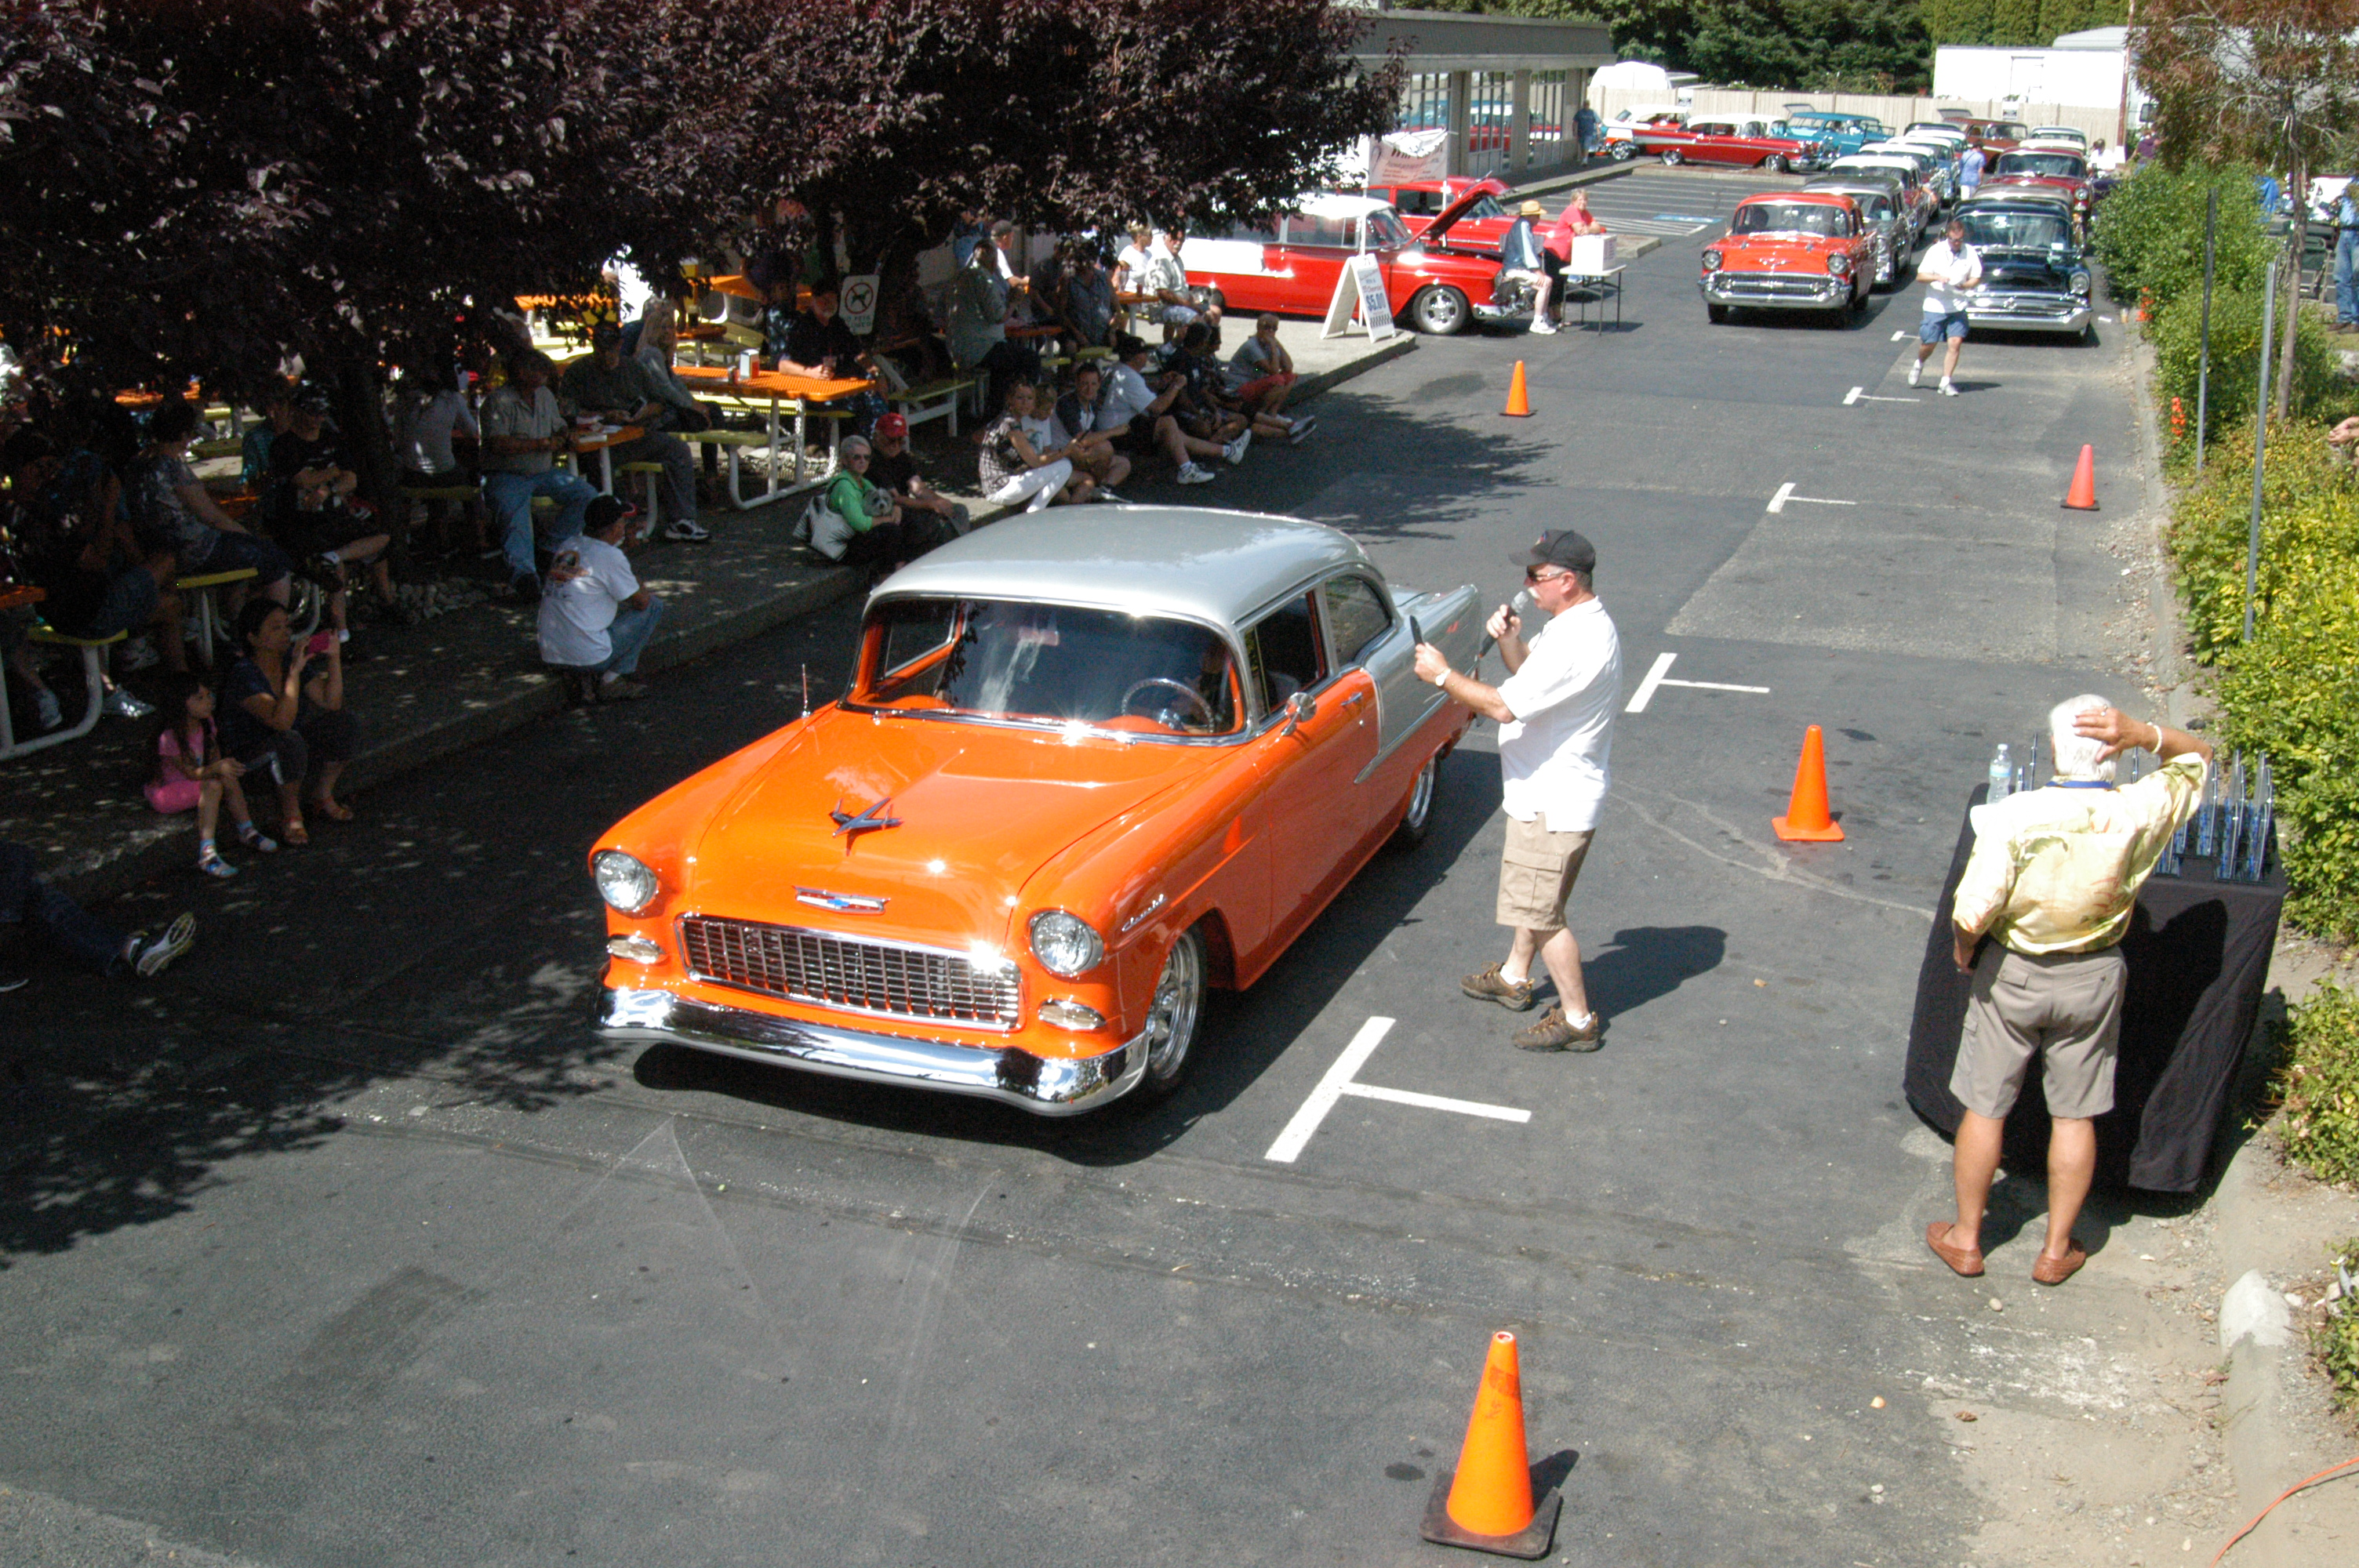 Car Show The Trophy Winners - Car show near me